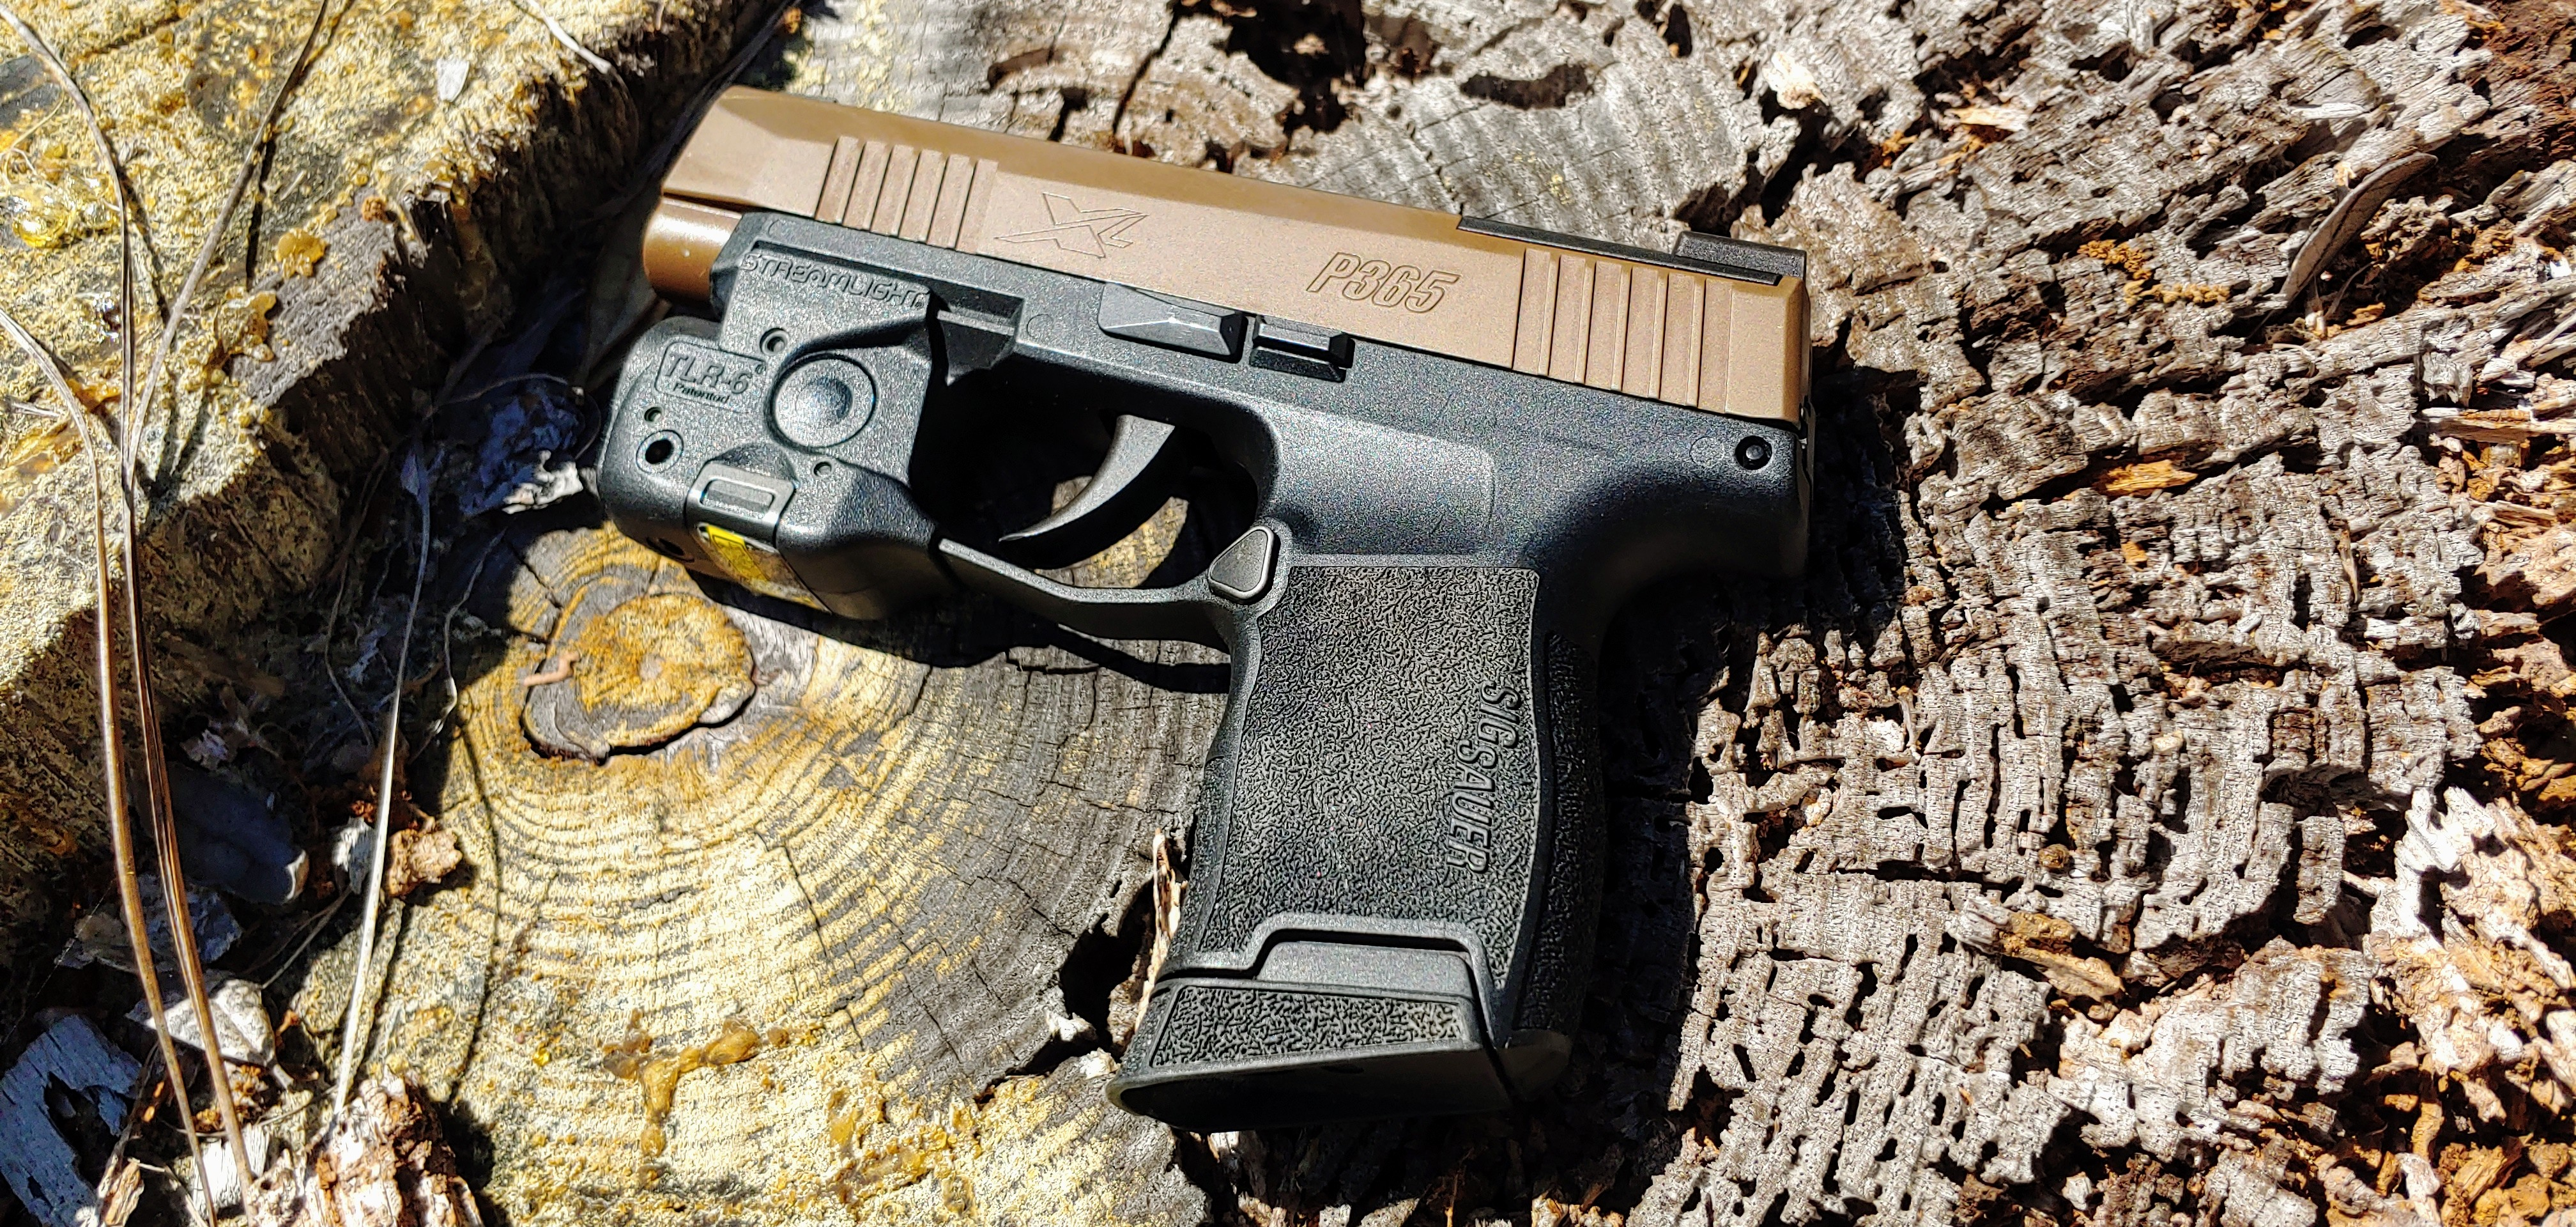 Sig Sauer, Sig P365, P395, SIG P365, firearms, concealed carry, P365 XL, P365 Hybrid, hybrid holsters, CrossBreed Holsters, CCP, SIG Pistols, Travis Pike, SIG, sig sauer p365 xl, IWB, OWB,